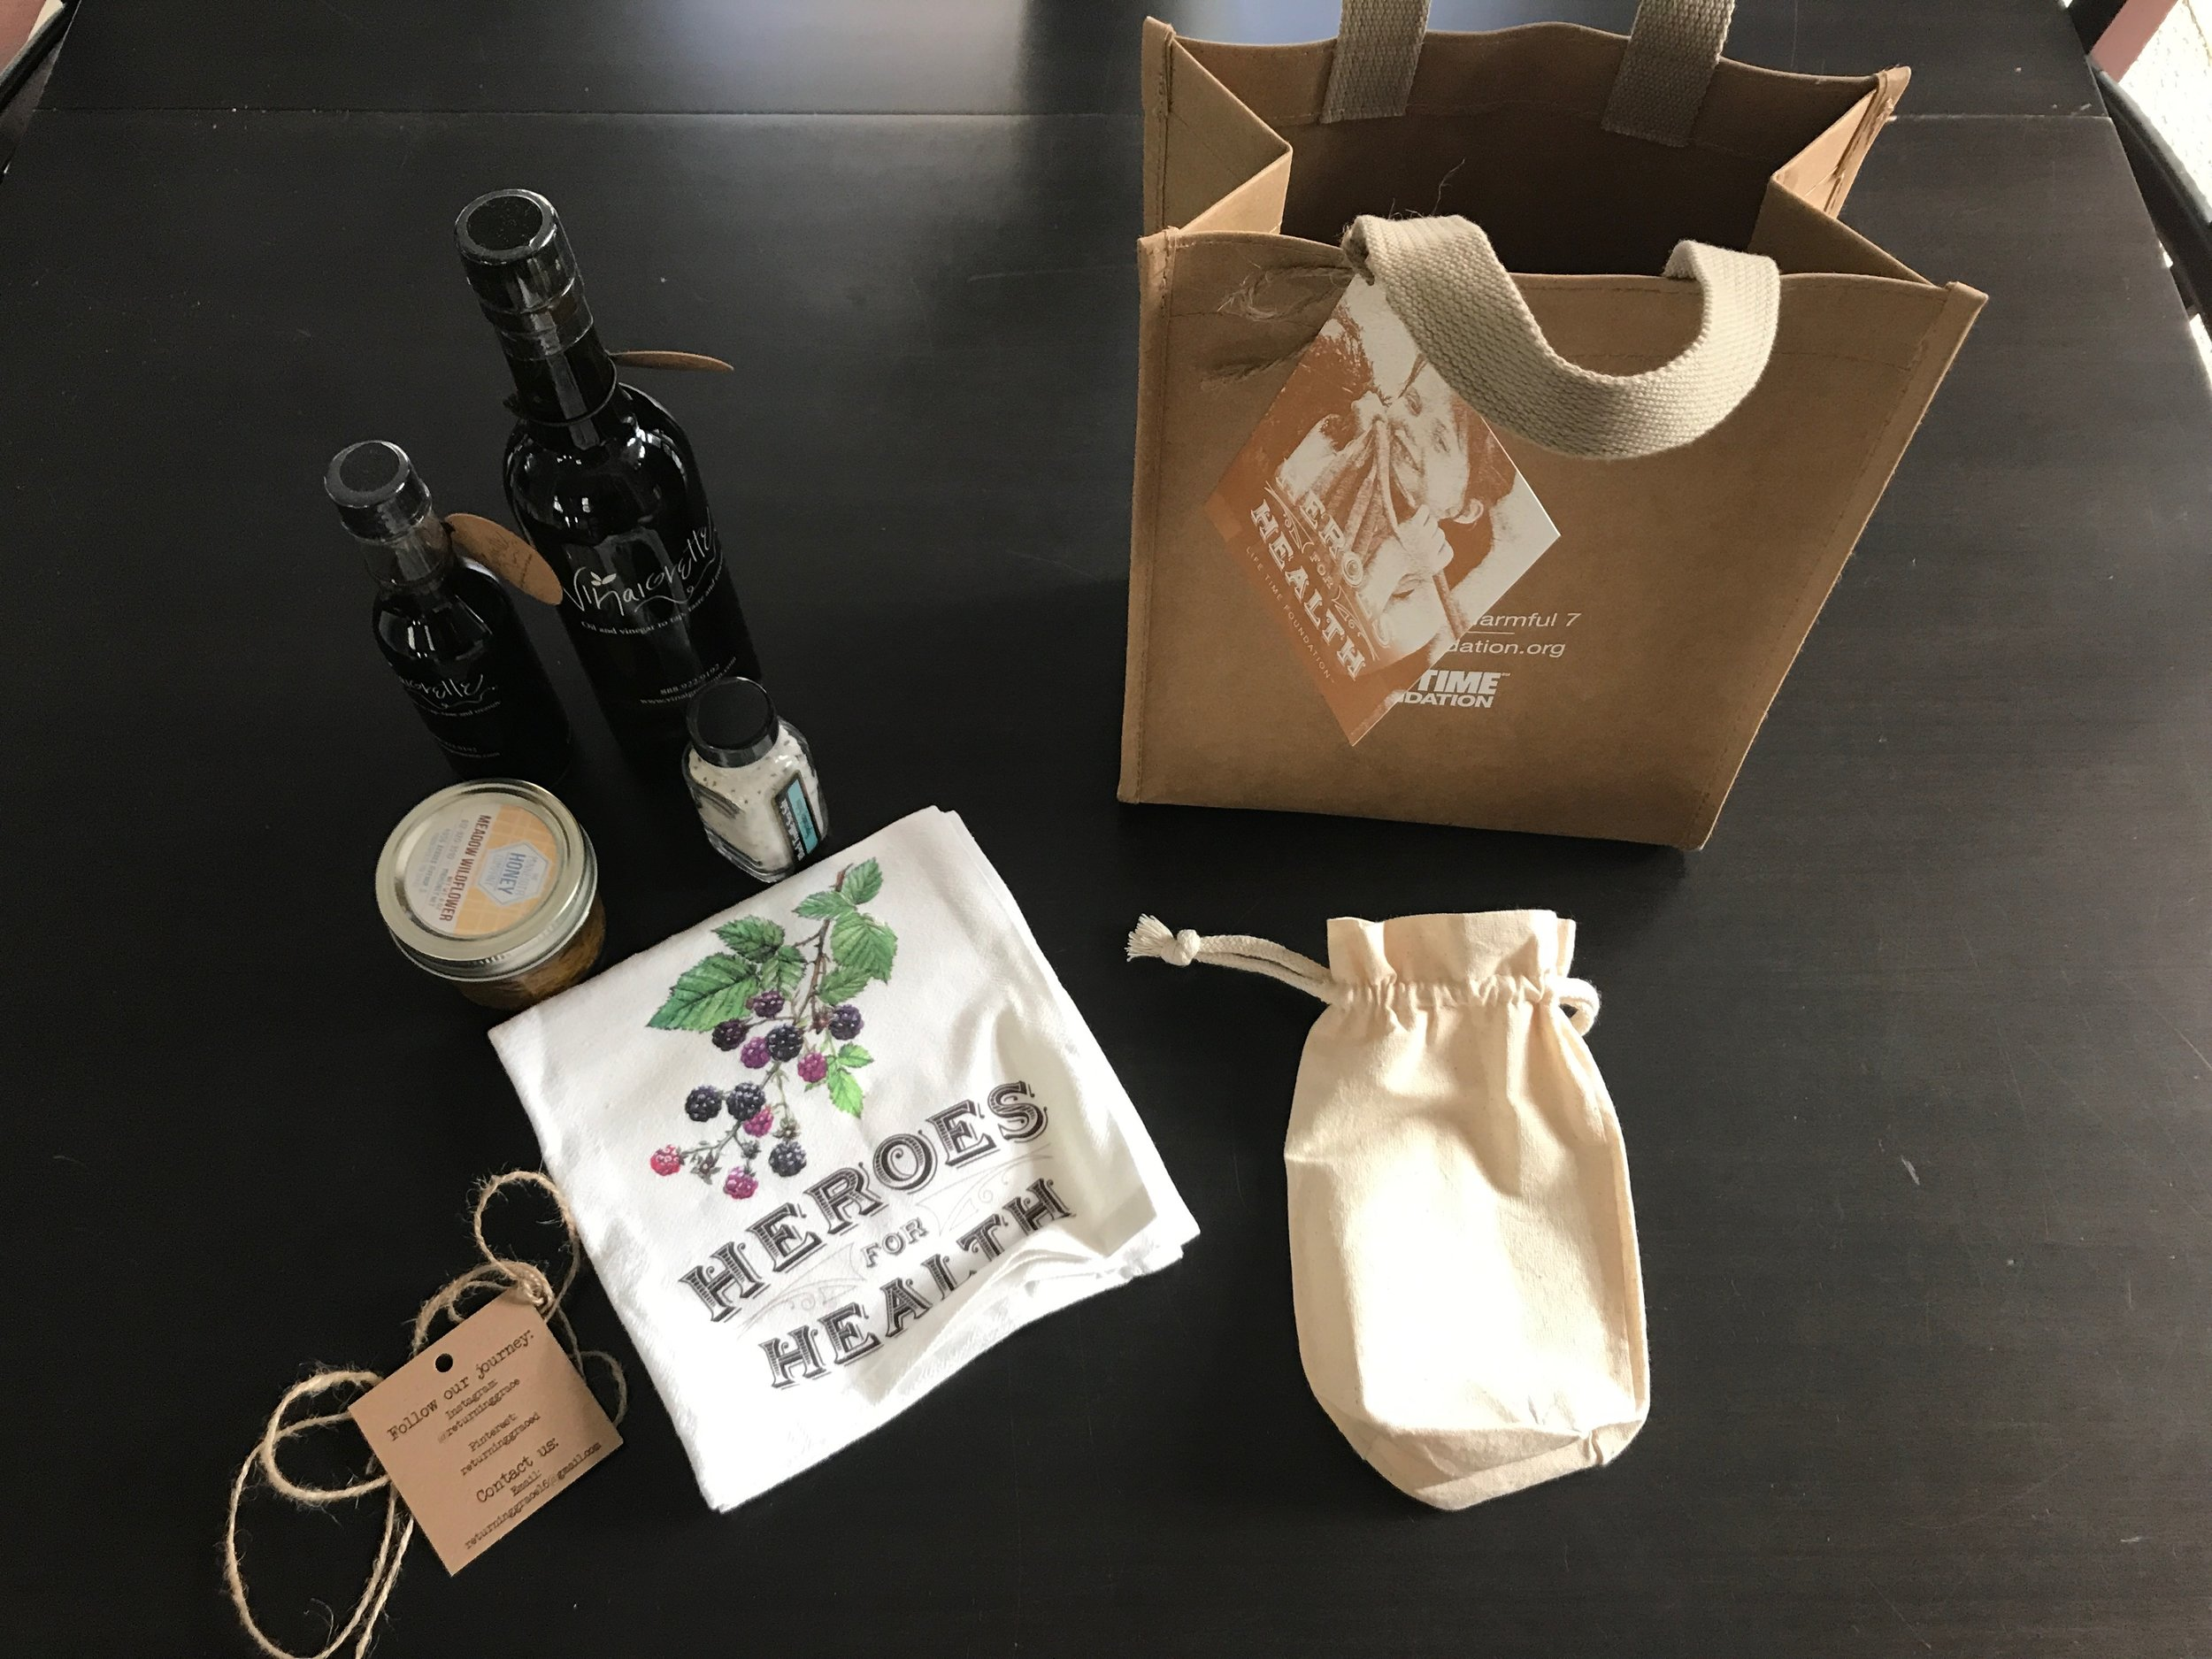 One of the best swag bags I ever received! The bag contained: local honey from my favorite honey company, Italian olive oil, blueberry vinegar, a tea towel and black truffle sea salt. YUM!